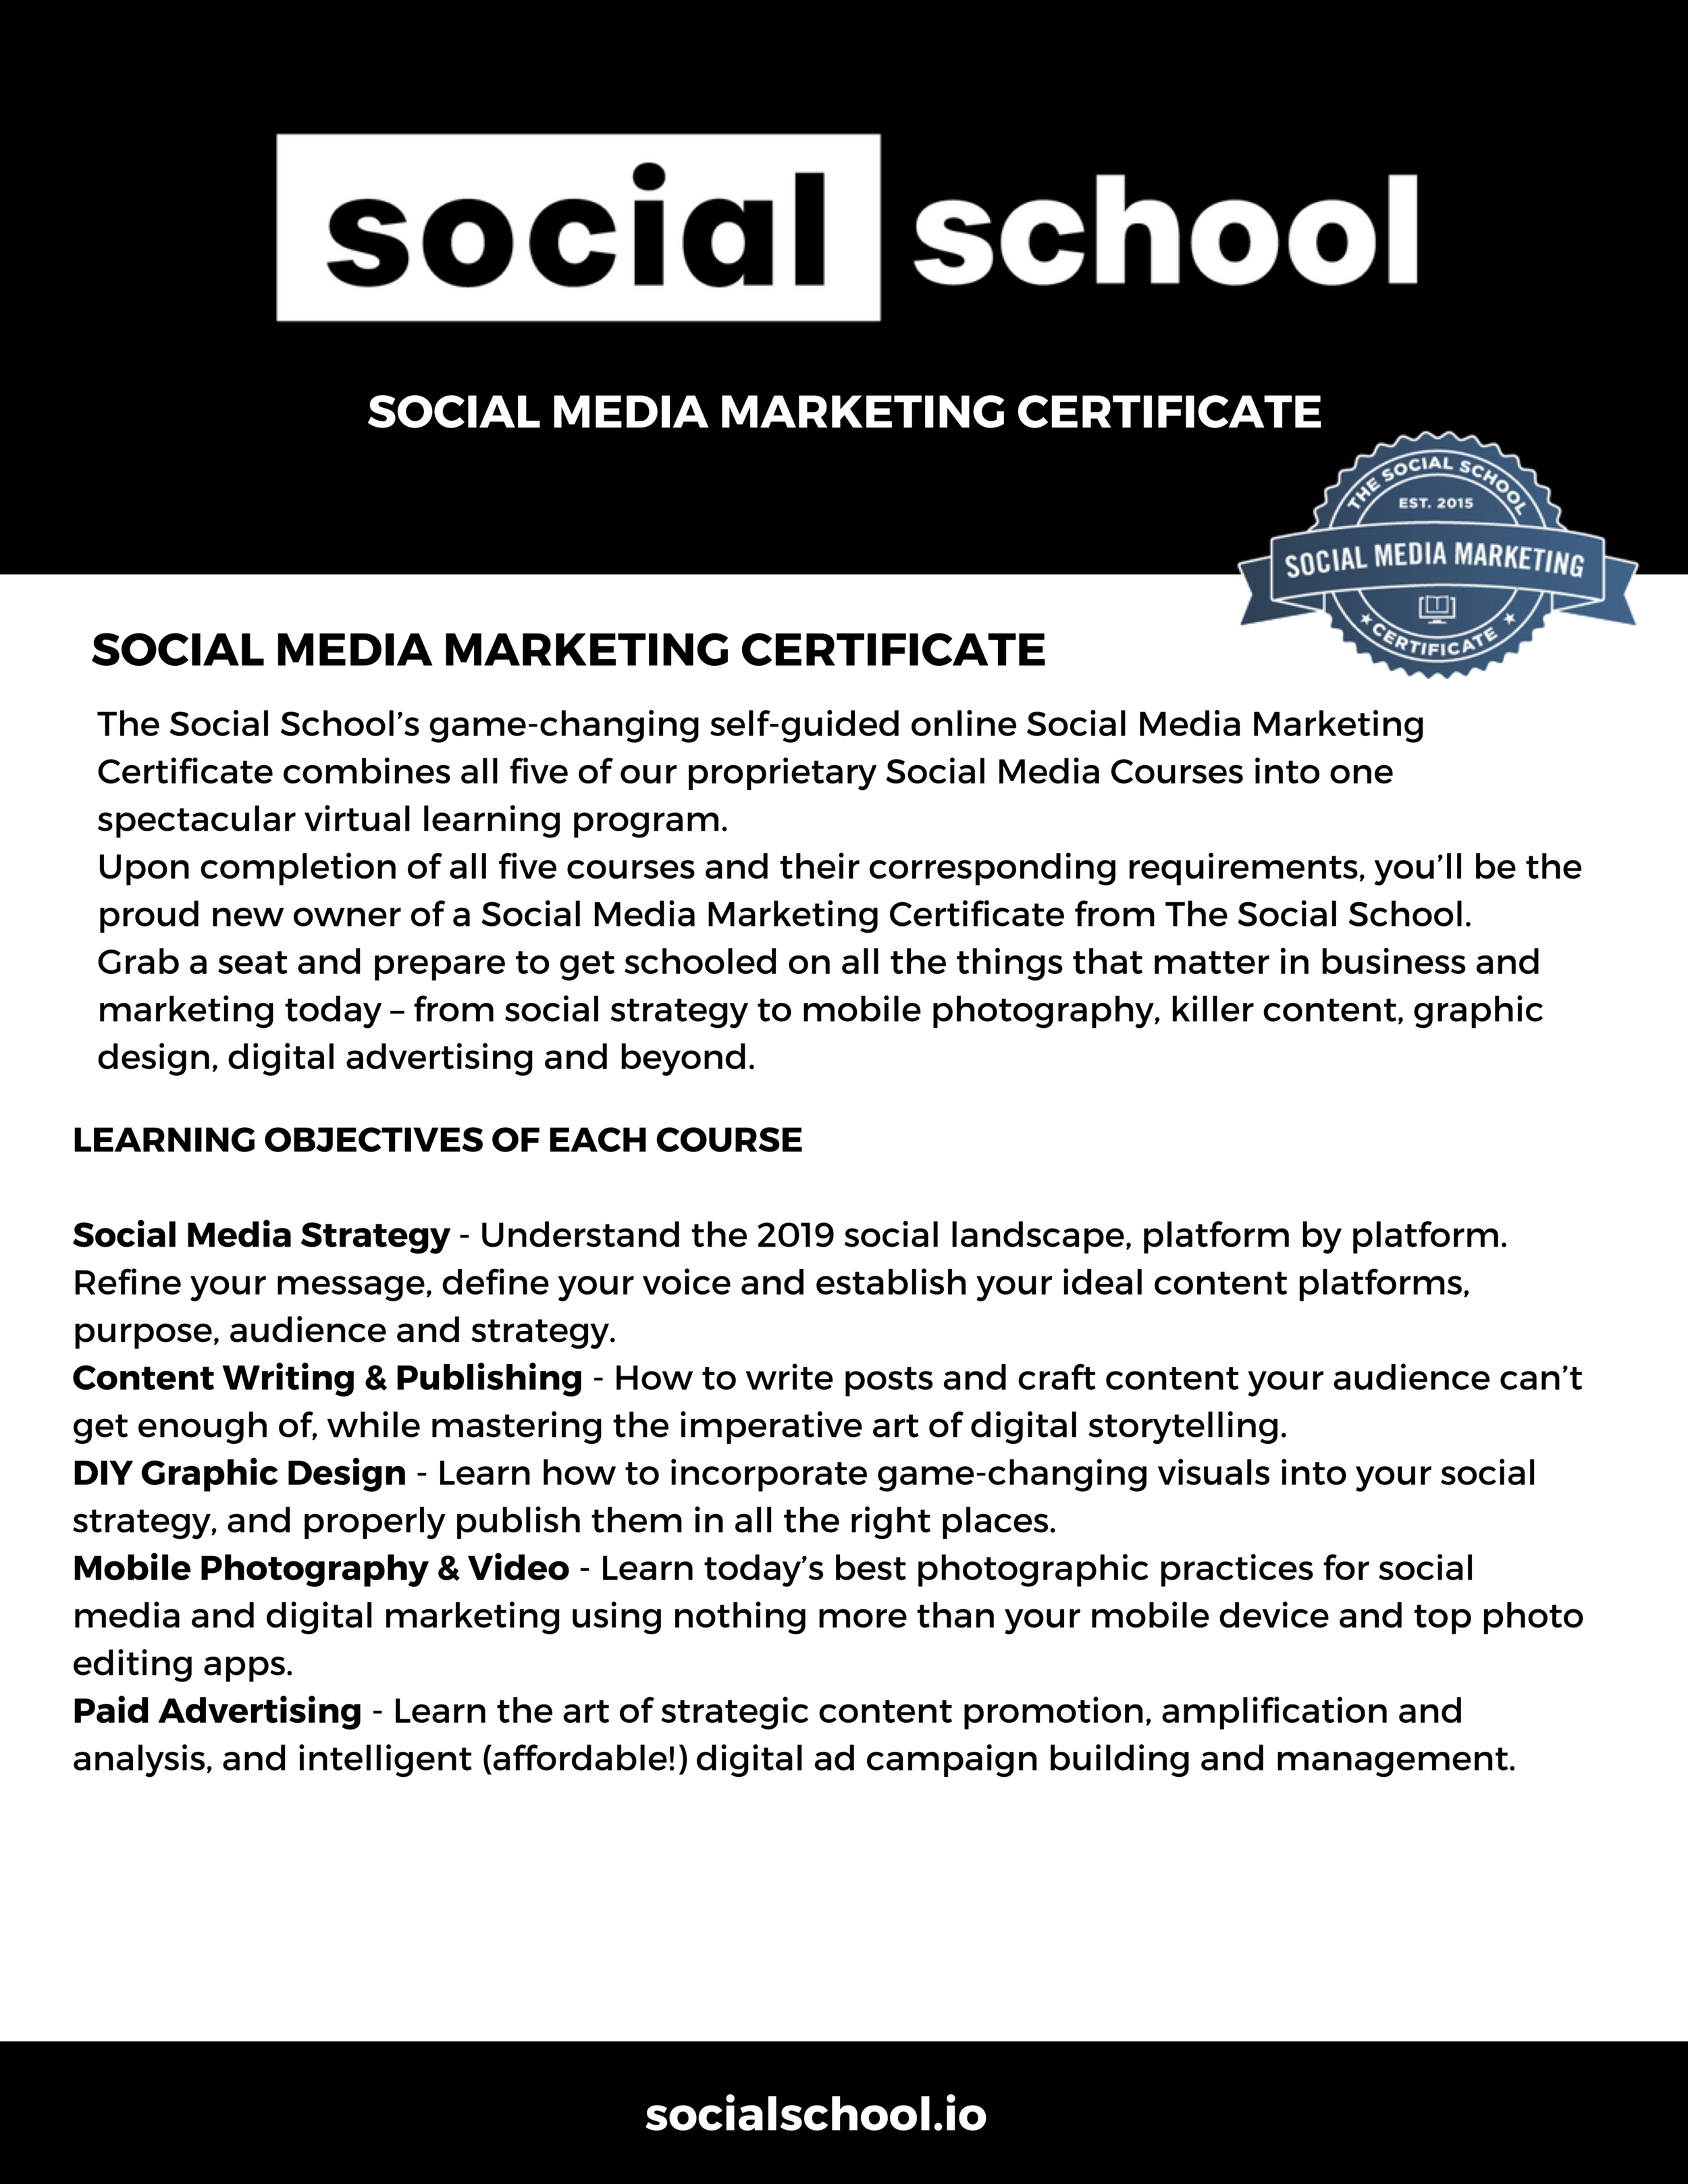 Click image to download course descriptions